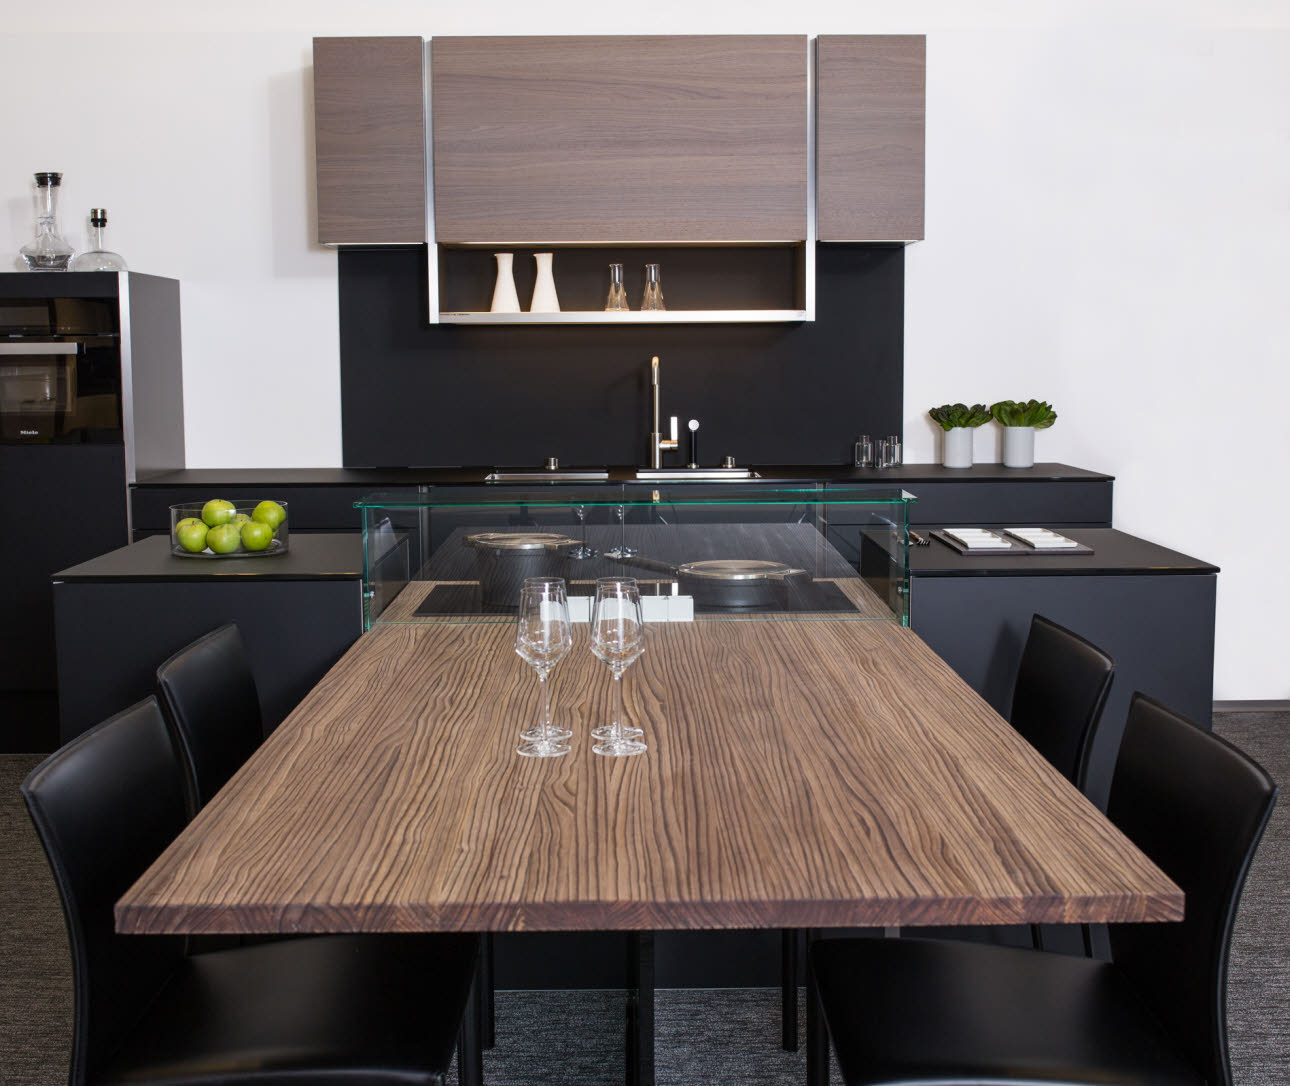 porsche design kitchen poggenpohl 1601